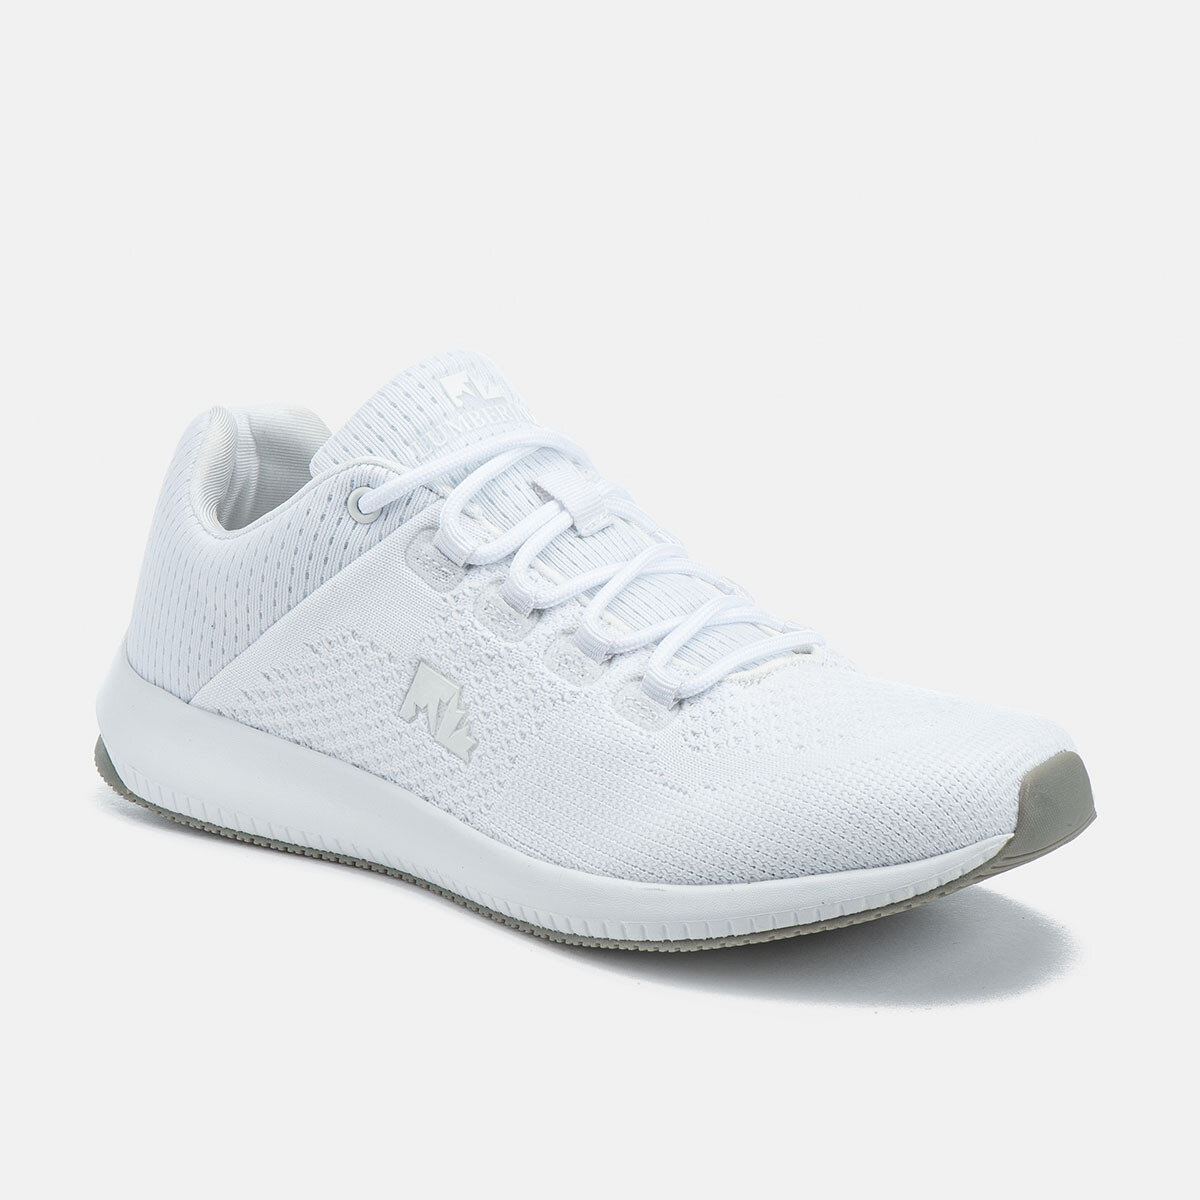 ALLE WHITE Man Running shoes